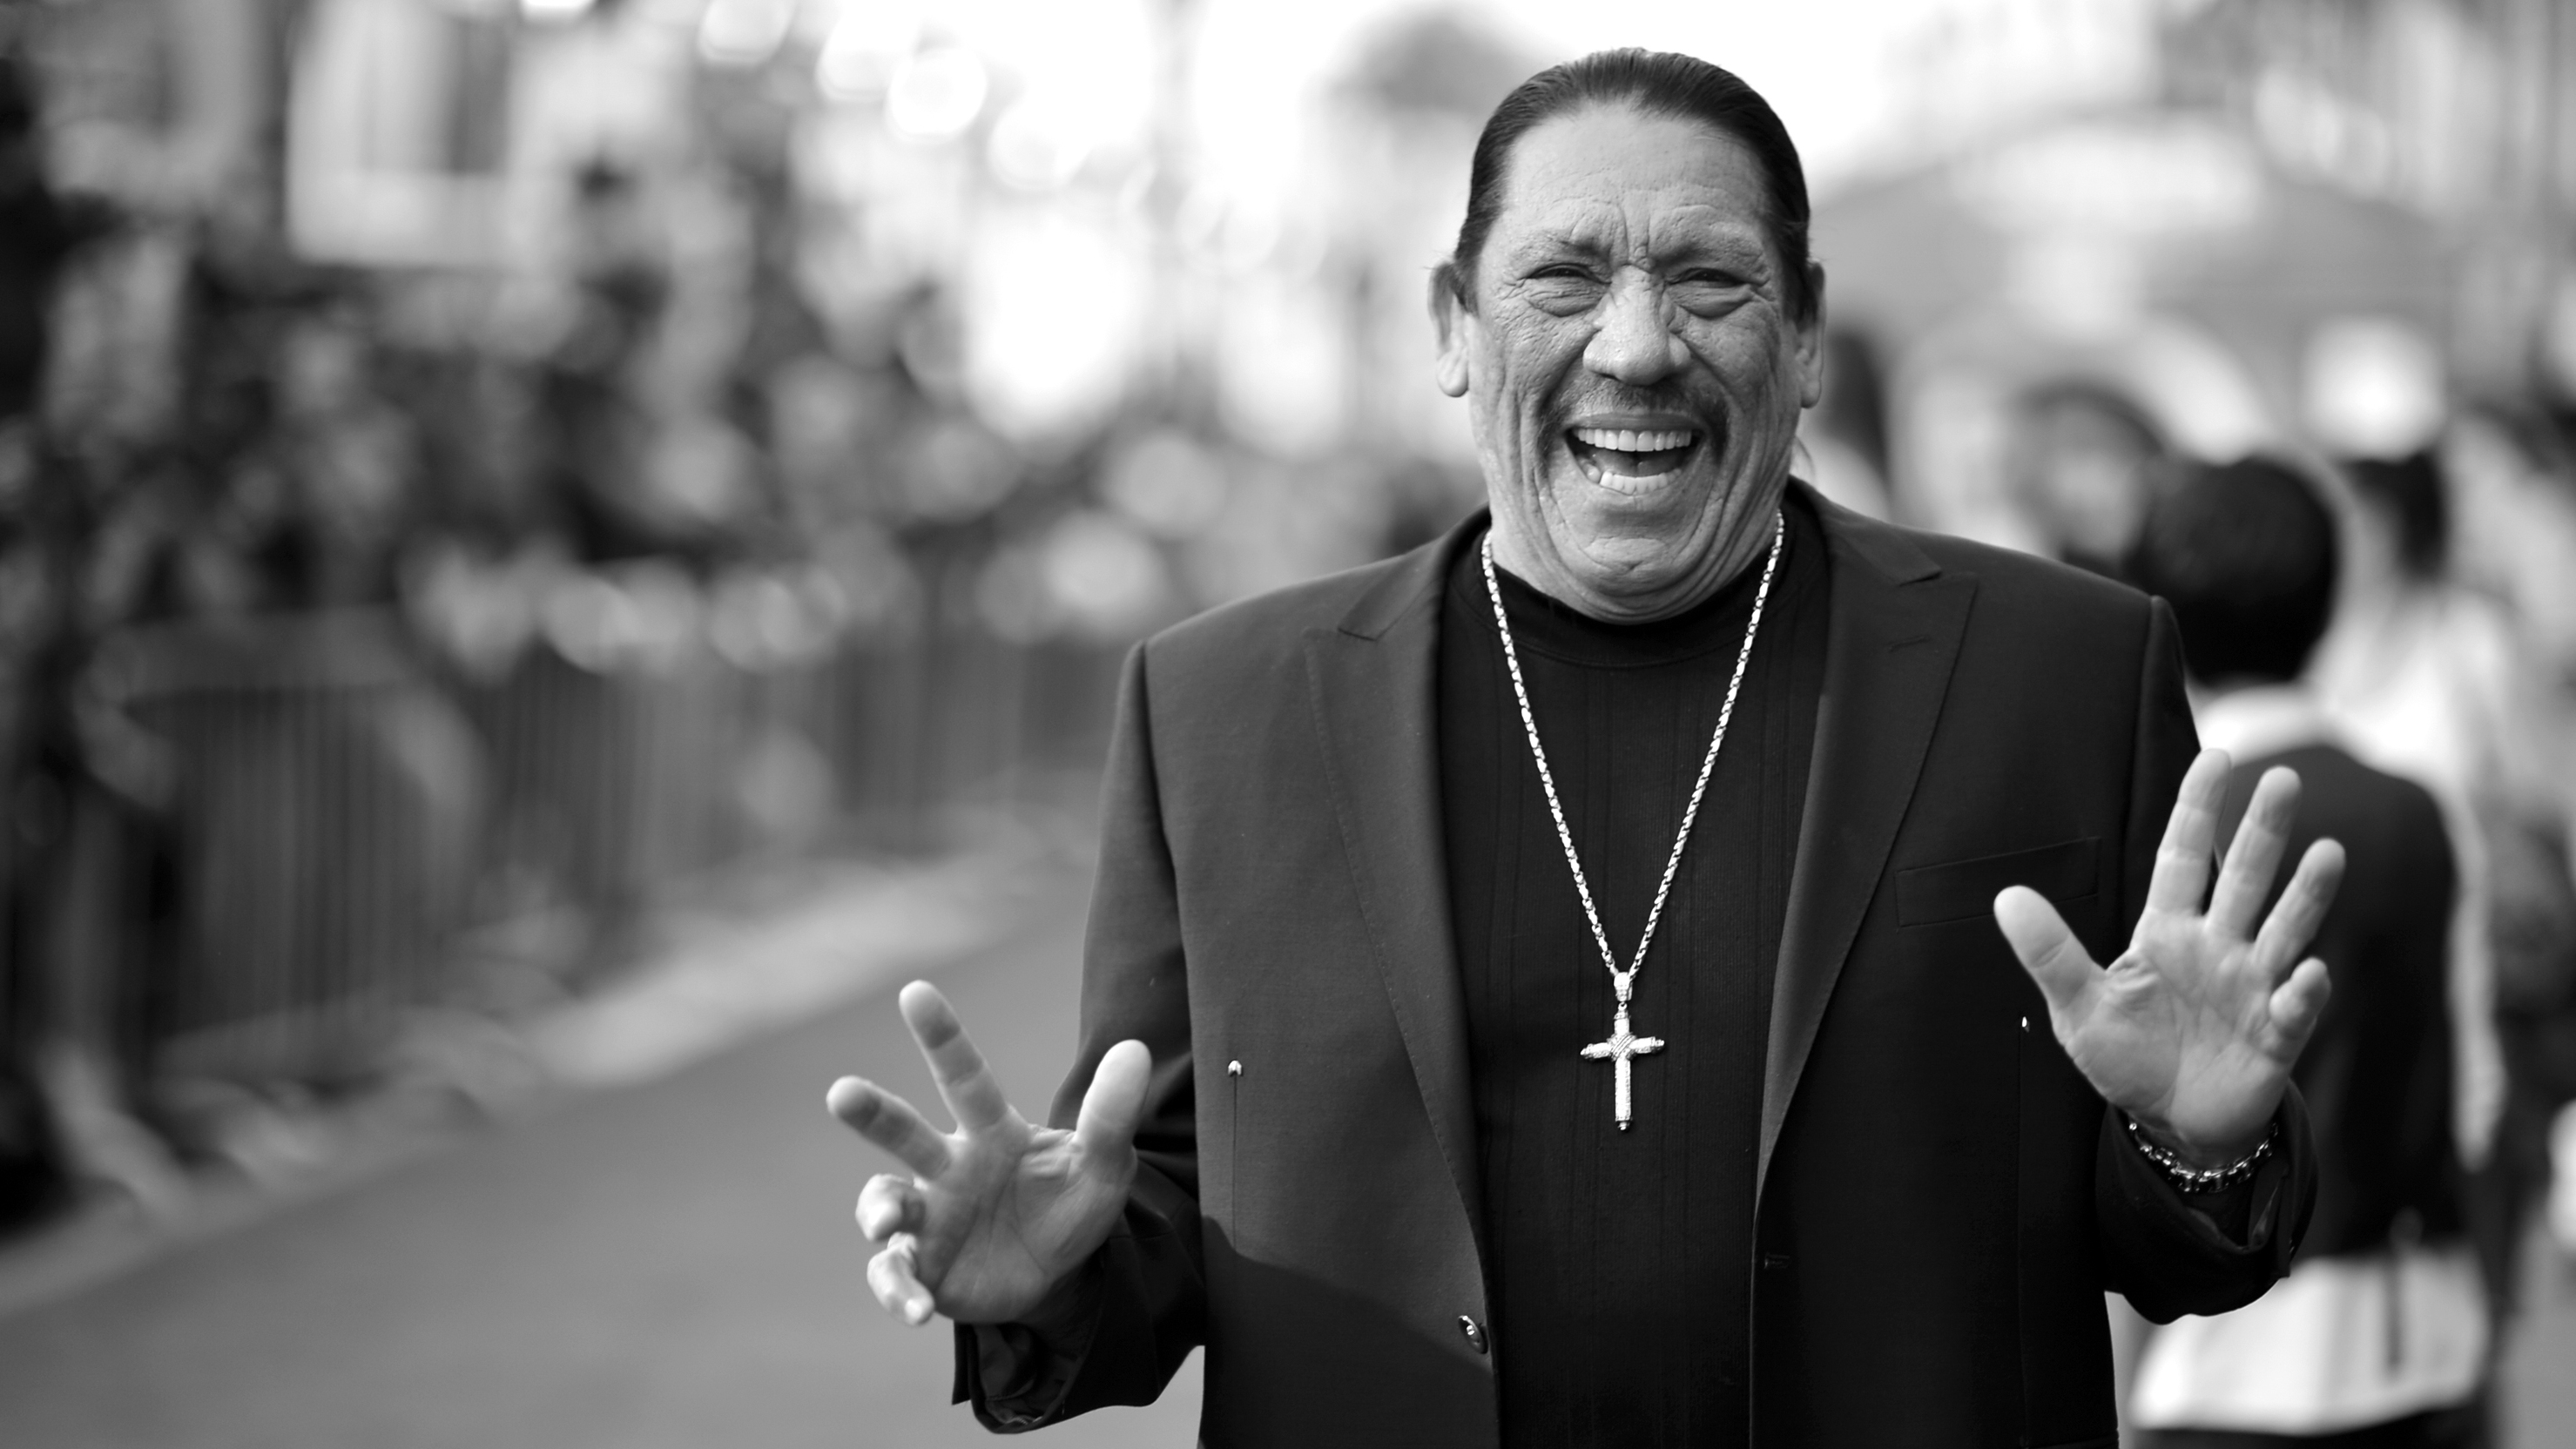 Danny Trejo: photo, biography, filmography and best films with the actor 56